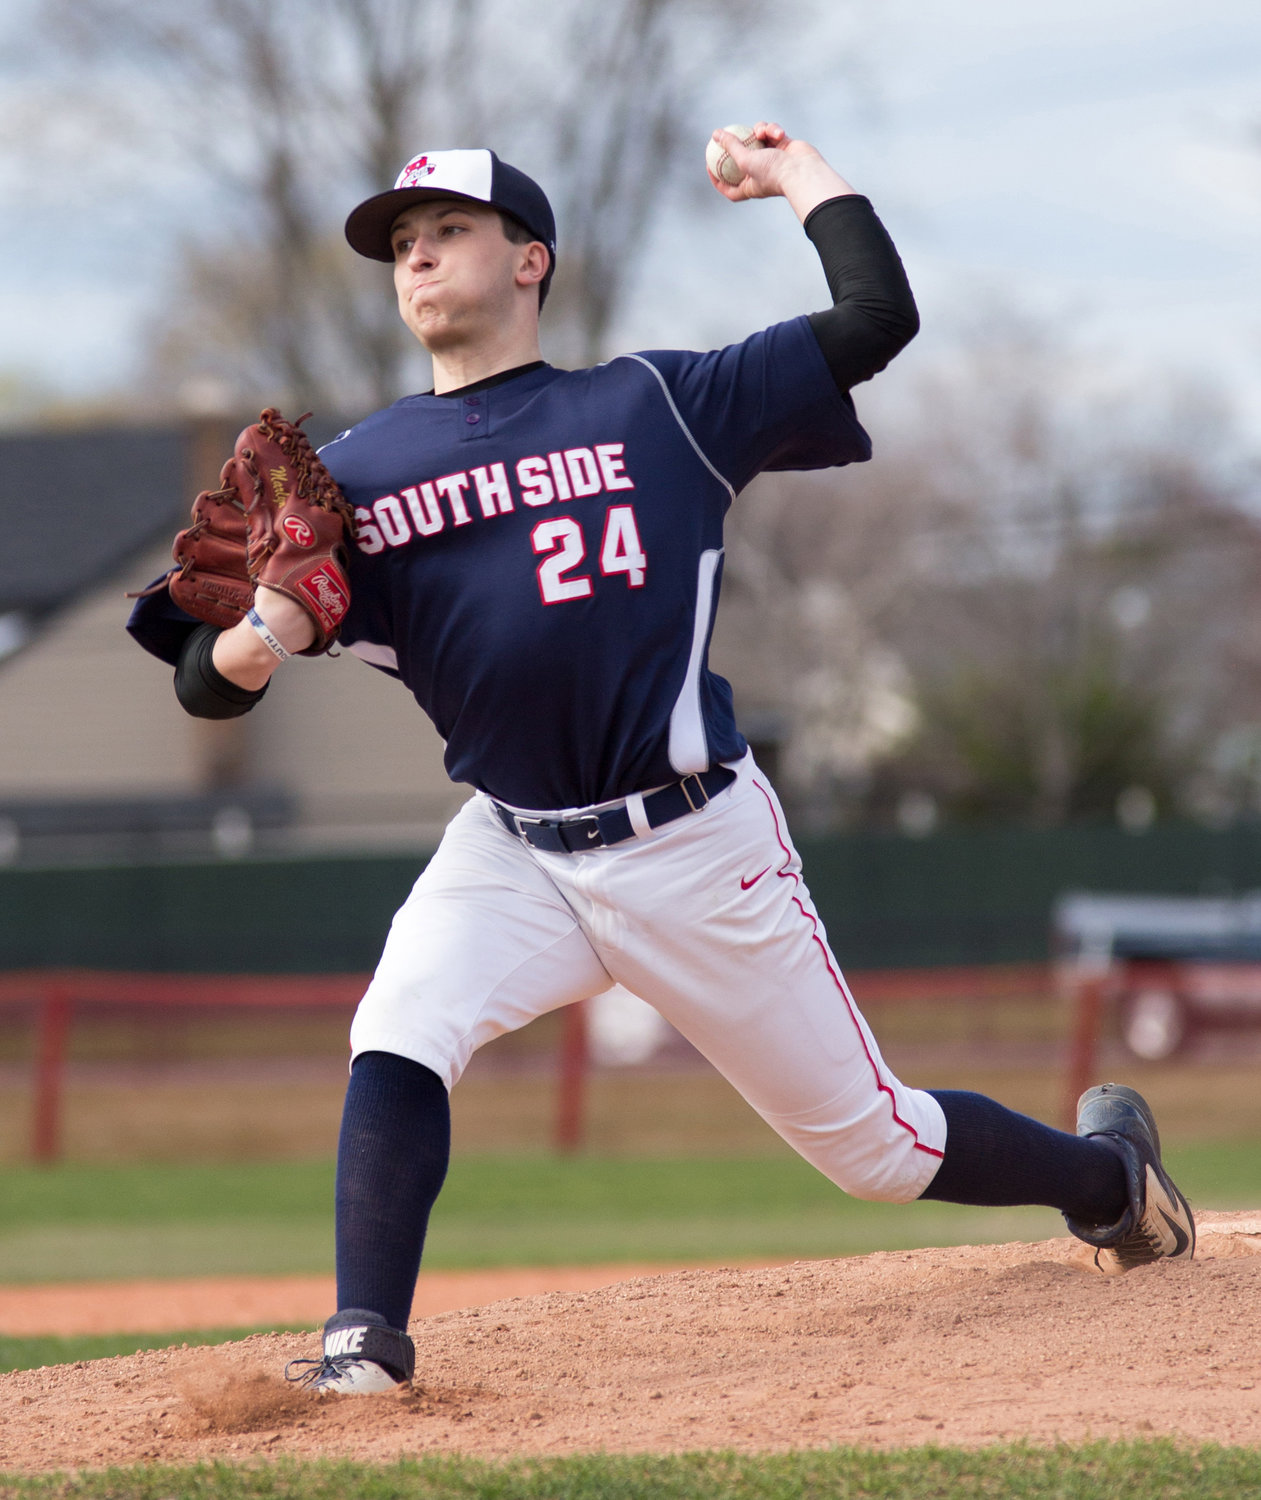 The Cleveland Indians drafted Andrew Misiaszek, who graduated from South Side High School in 2015, in the 32nd round of the Major League Baseball Draft on June 5.